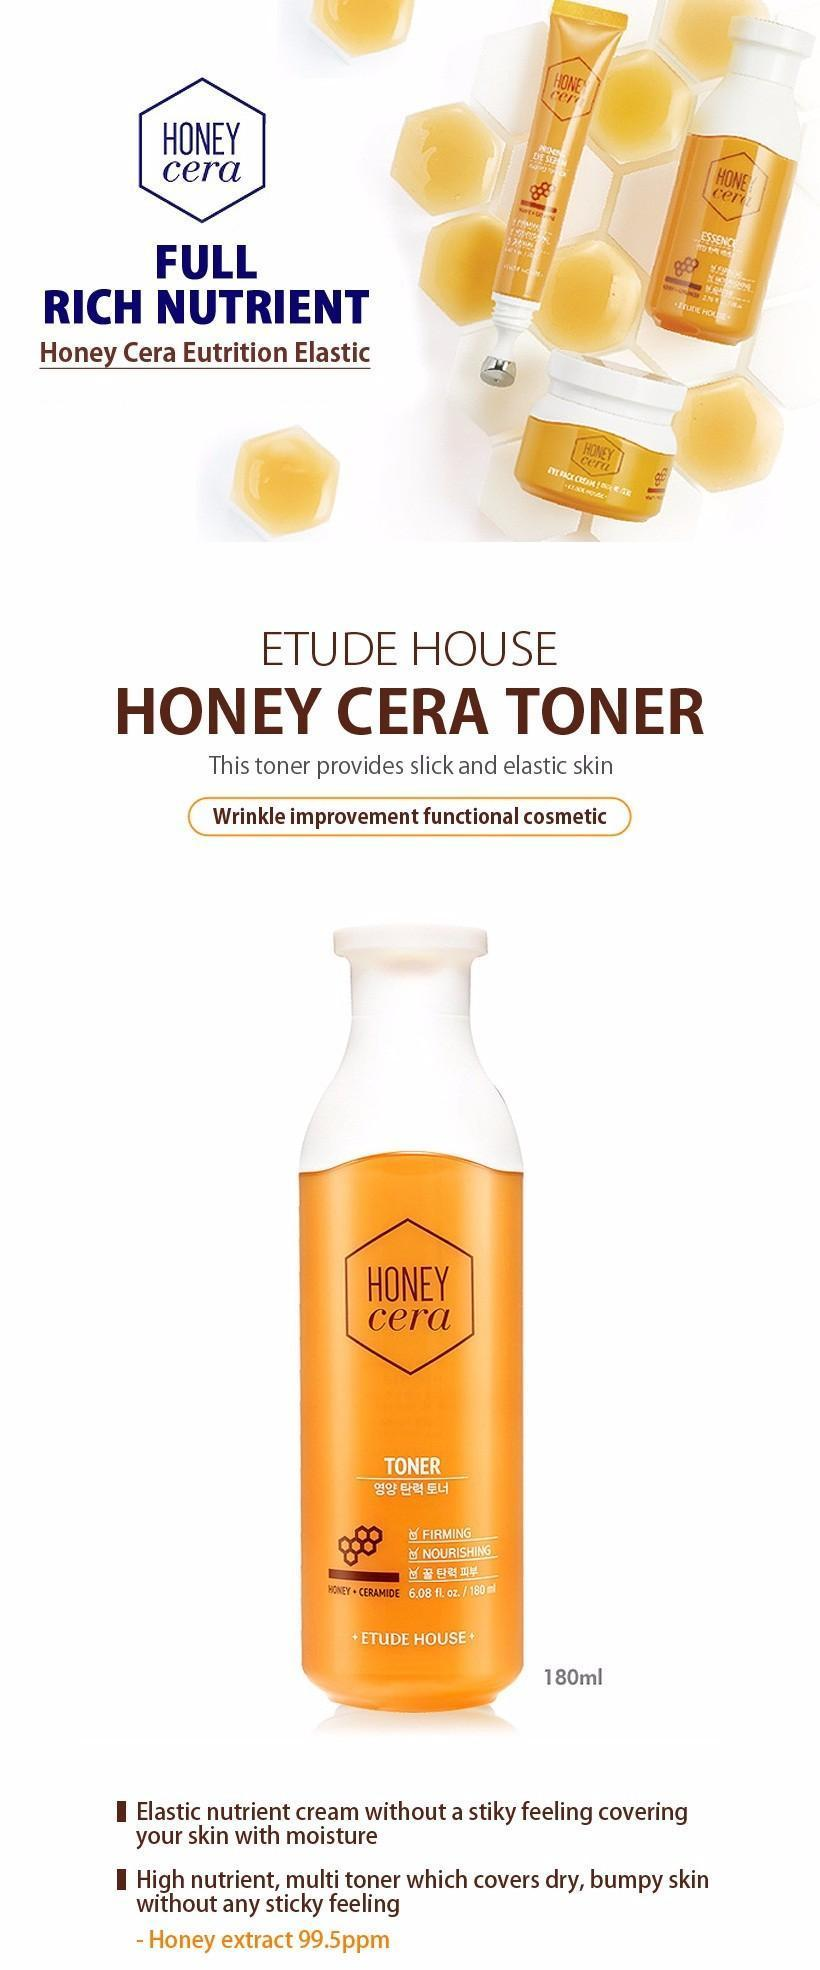 ETUDE HOUSE Honey Cera Toner 180ml